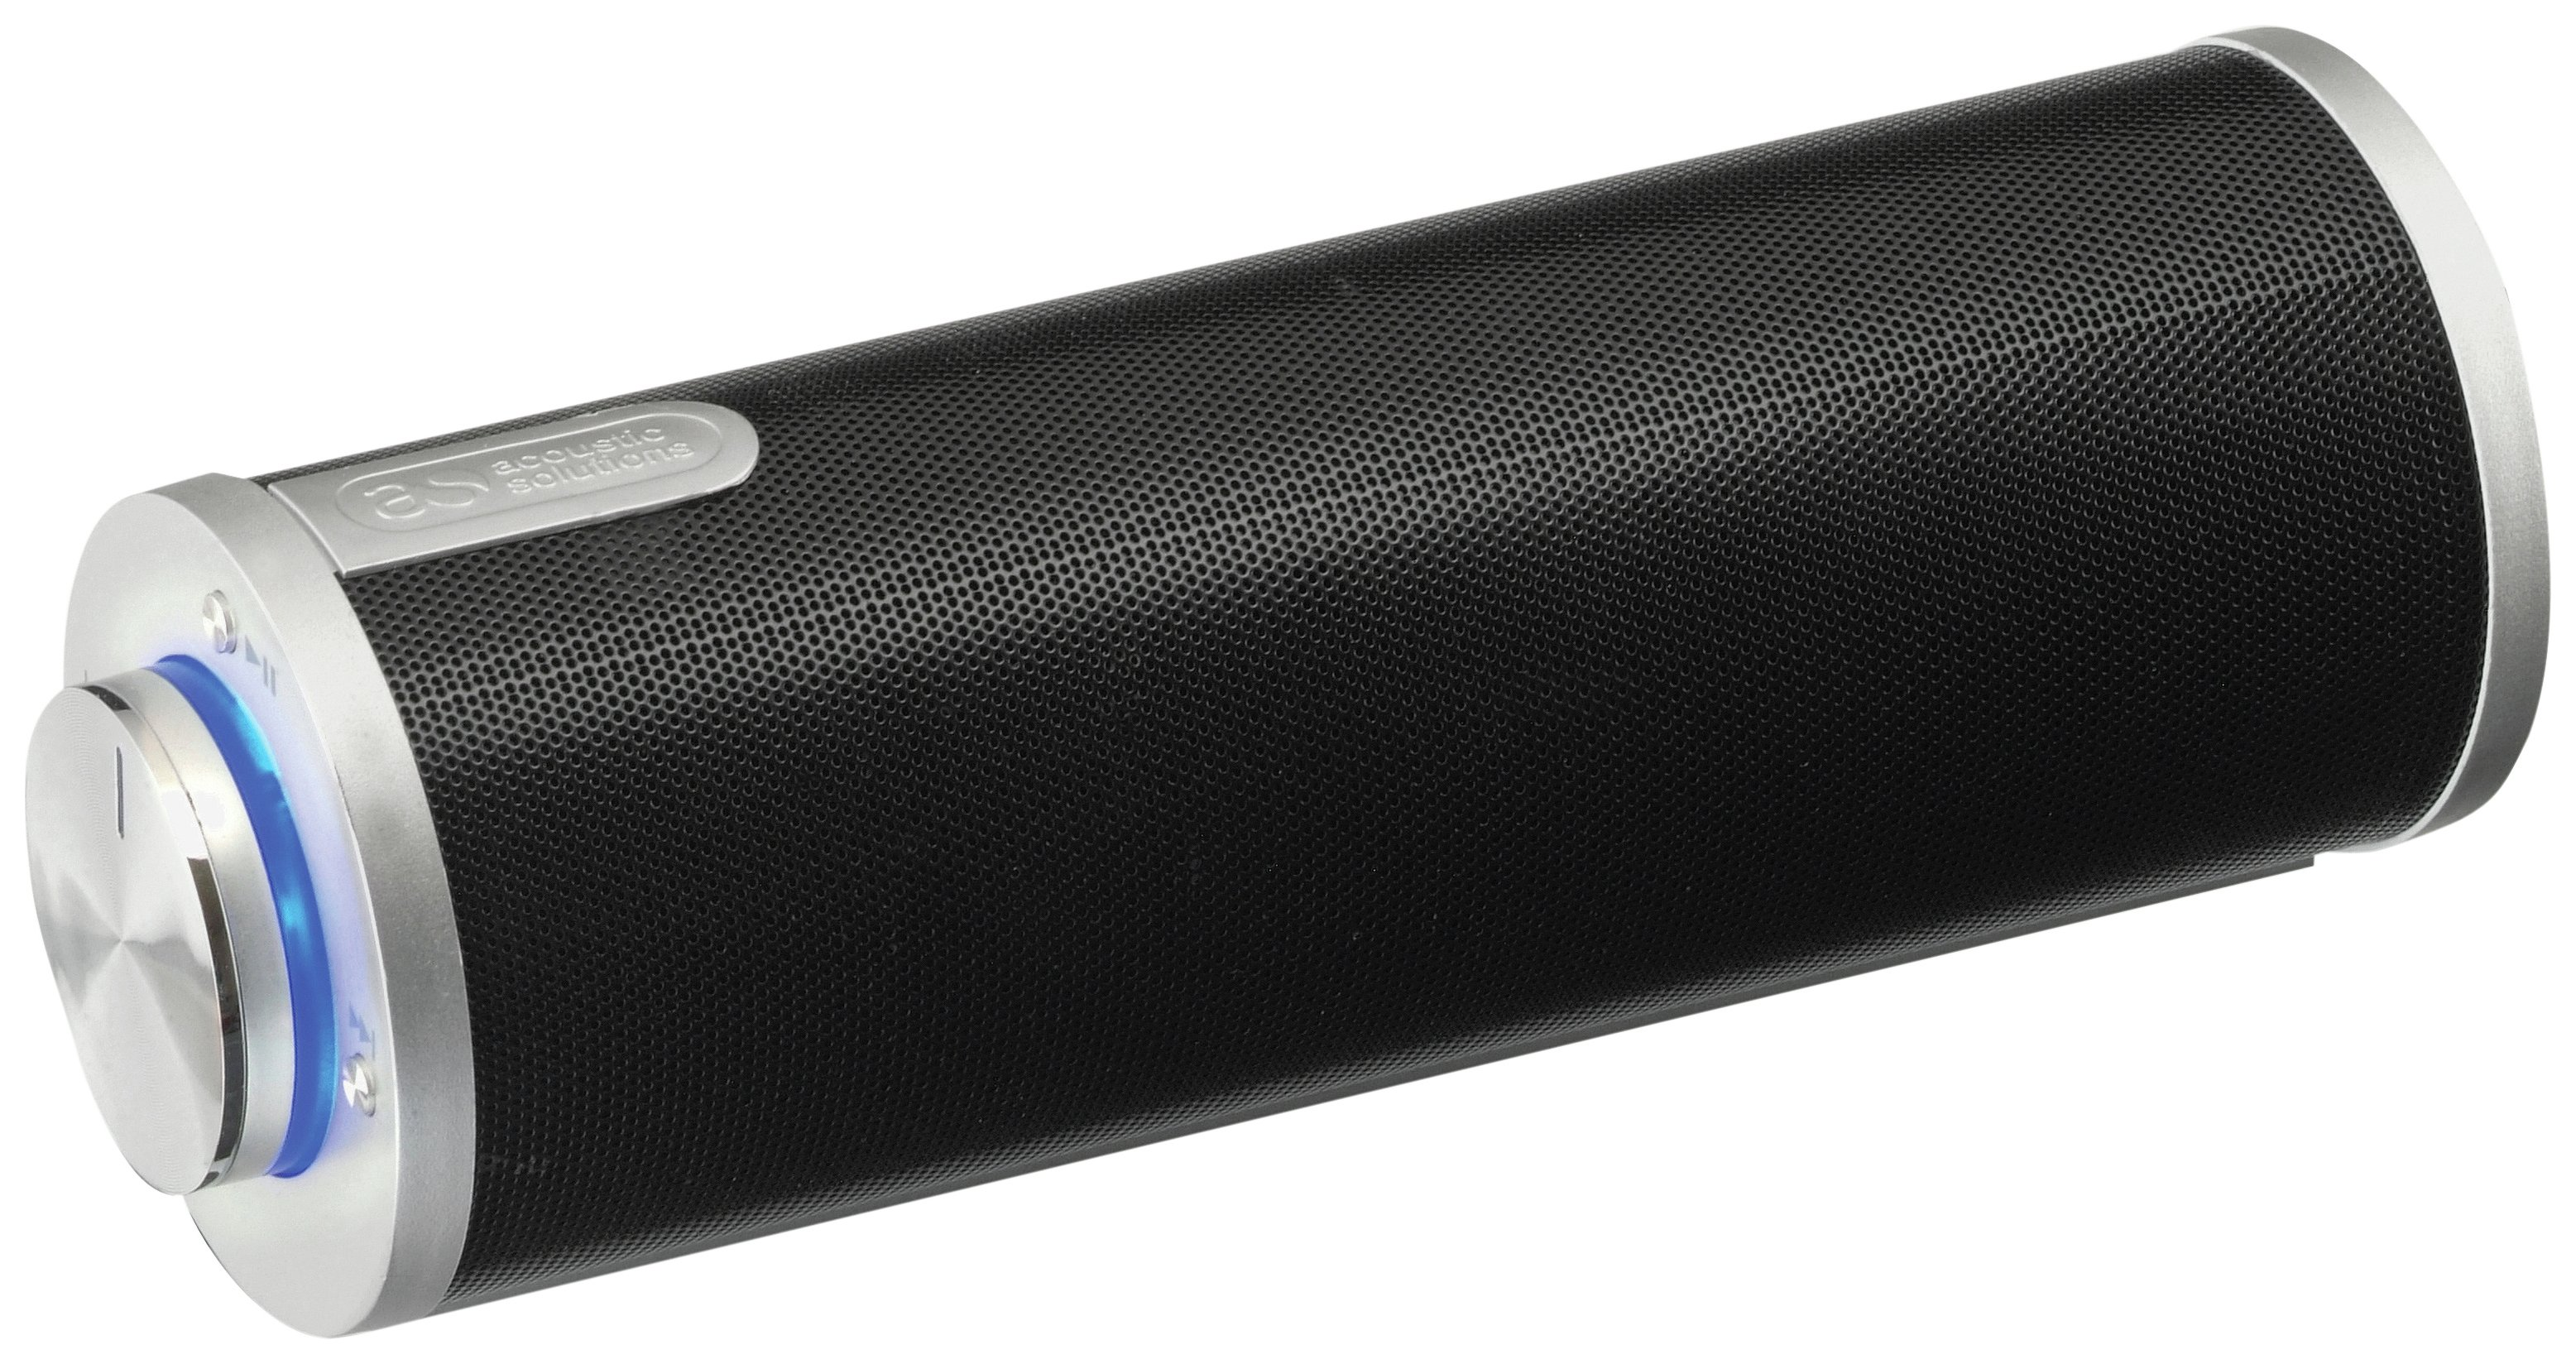 Image of Acoustic Solutions - Bluetooth Portable Speaker - Black/Silver